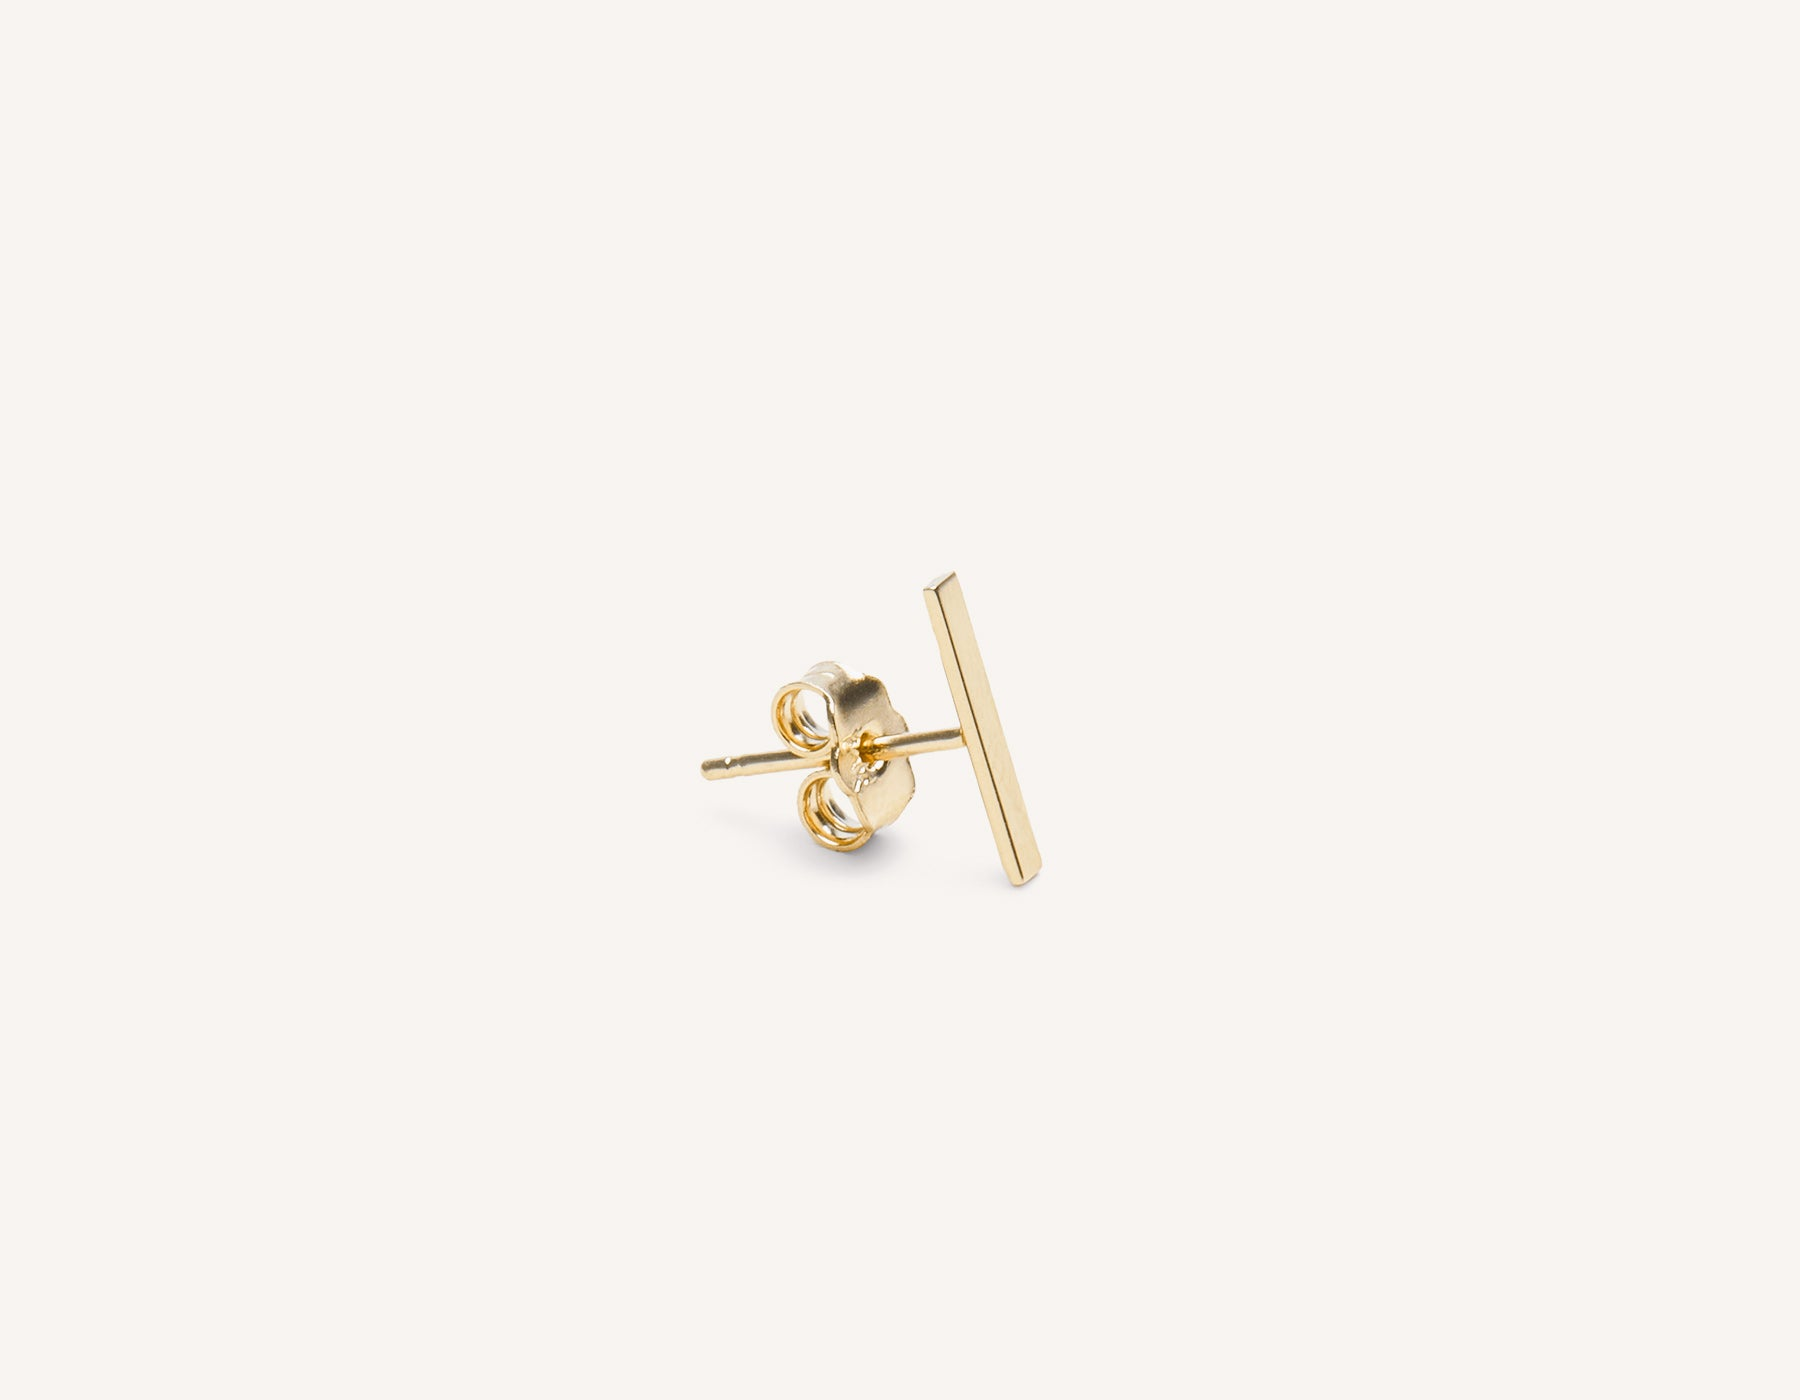 Contemporary subtle Line Stud earring 14k solid gold Vrai & Oro versatile jewelry, 14K Yellow Gold